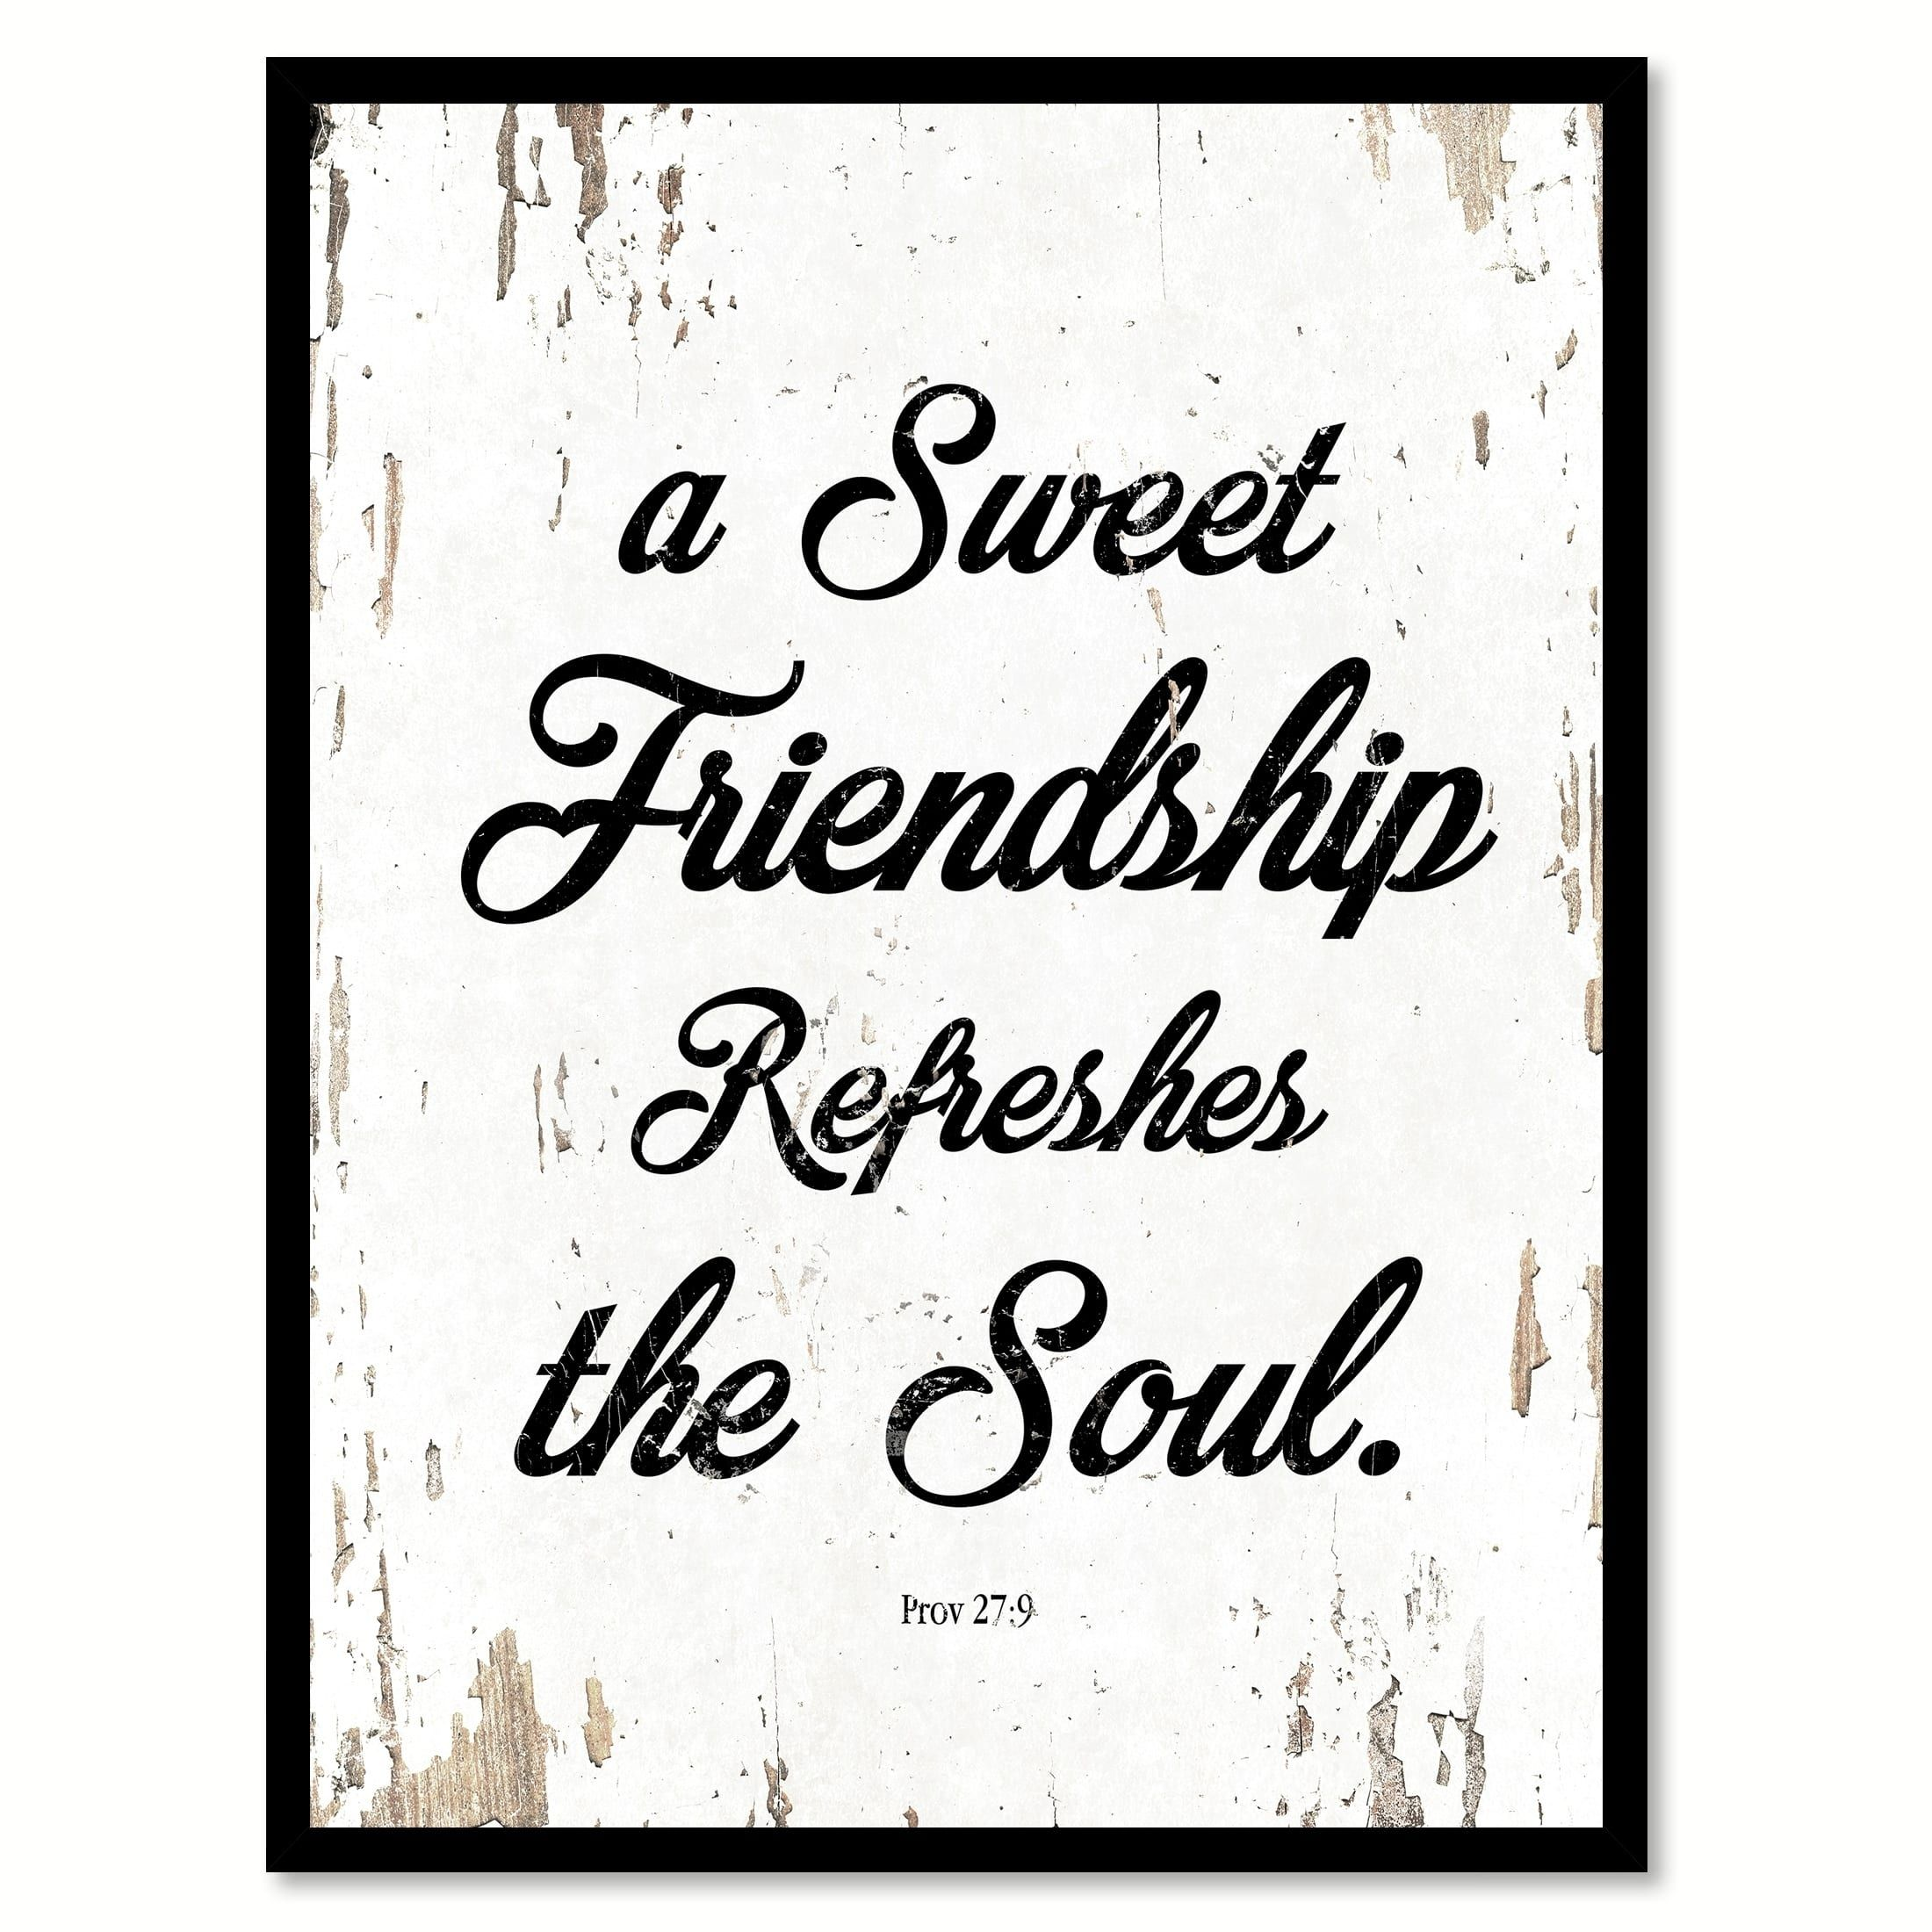 Quotes About Christian Friendship A Sweet Friendship Refreshes The Soul  Proverbs 279 Quote Saying